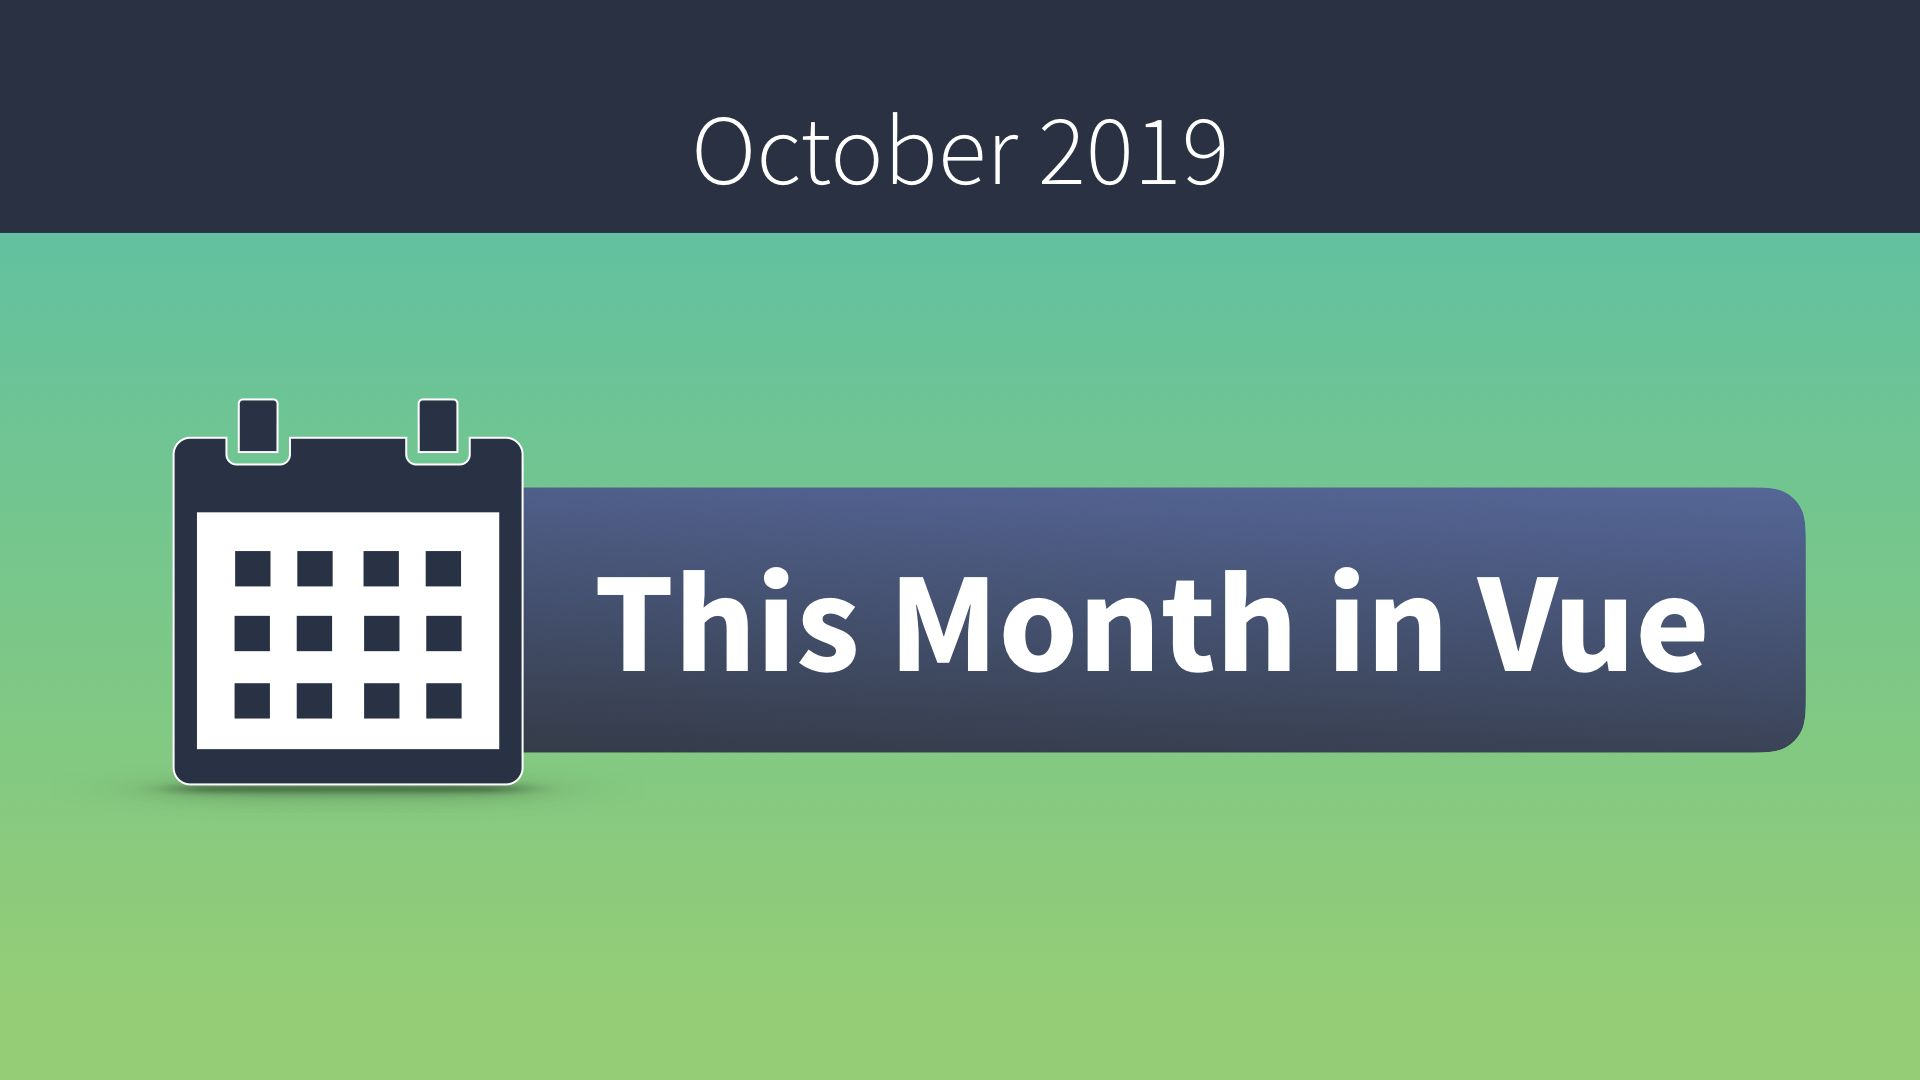 This Month in Vue - October 2019